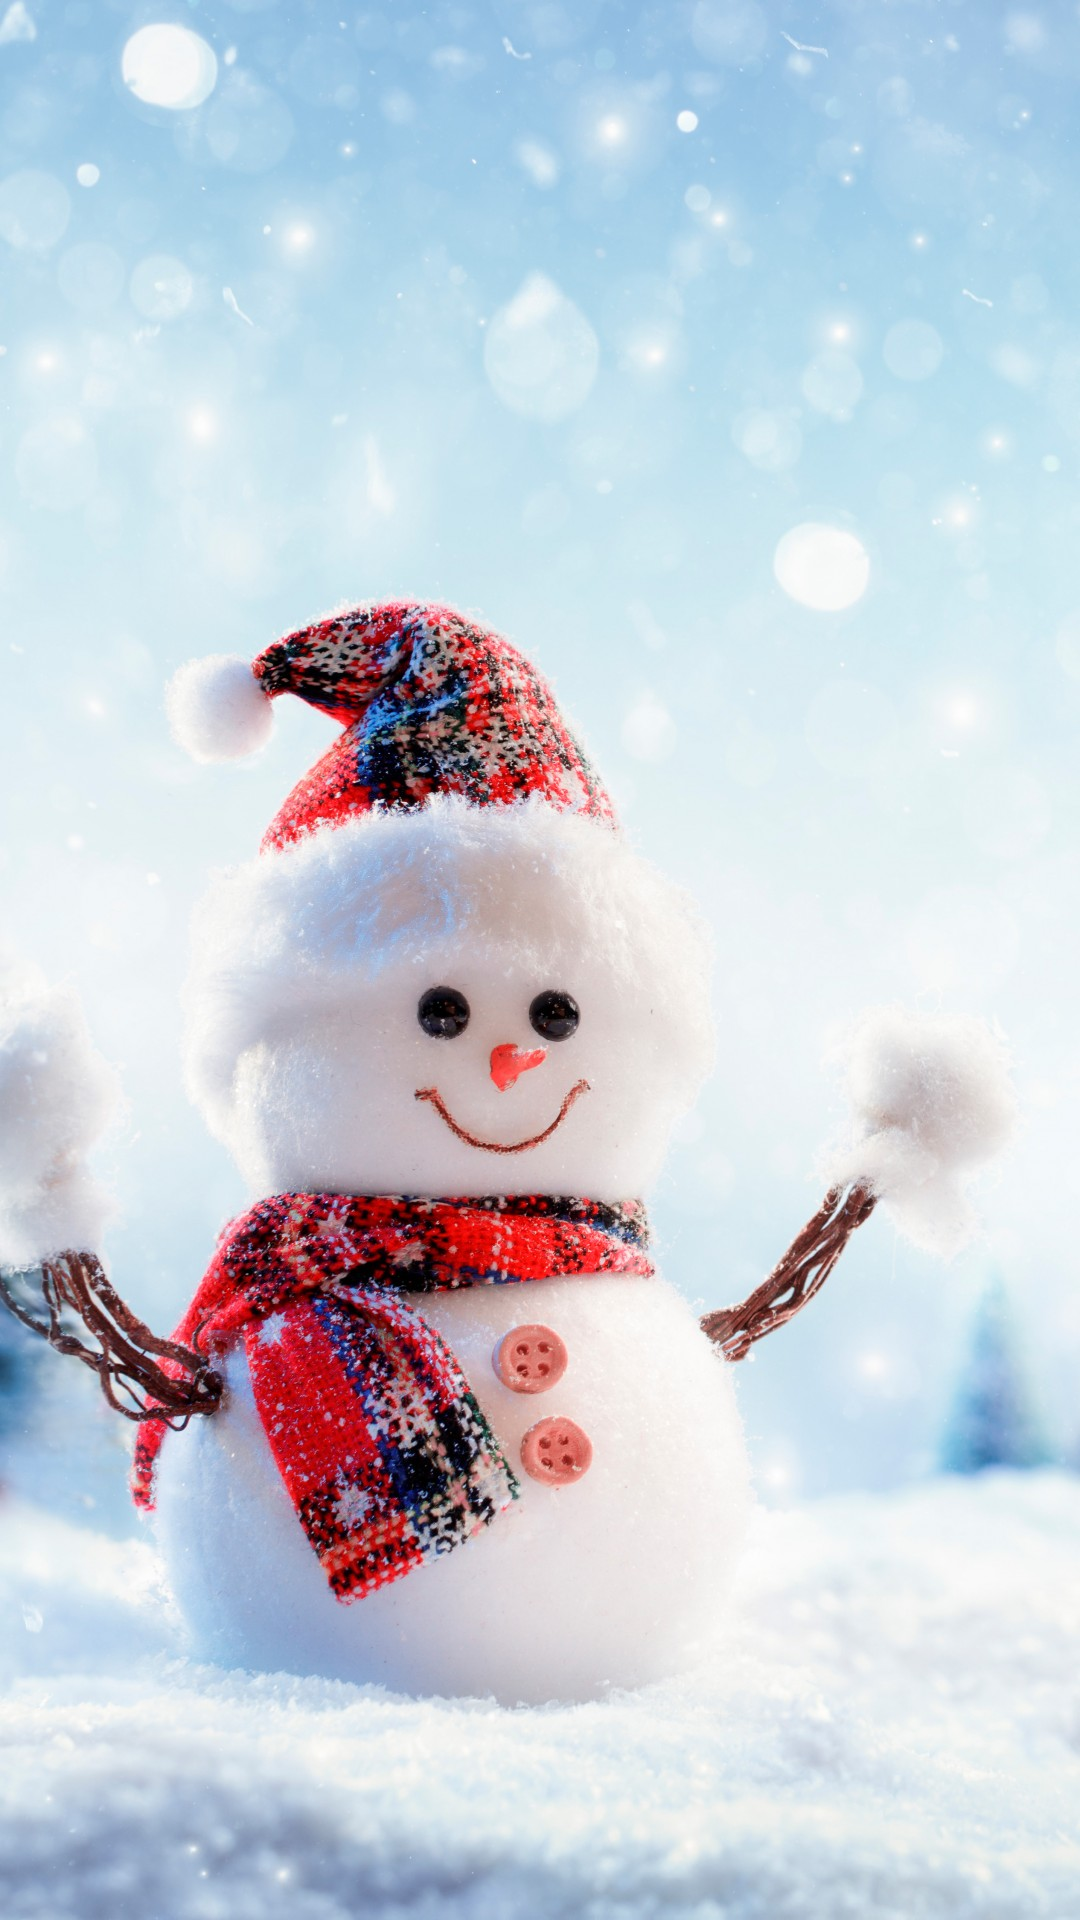 Wallpaper Nature With Quotes Wallpaper Christmas New Year Snow Winter Snowman 8k